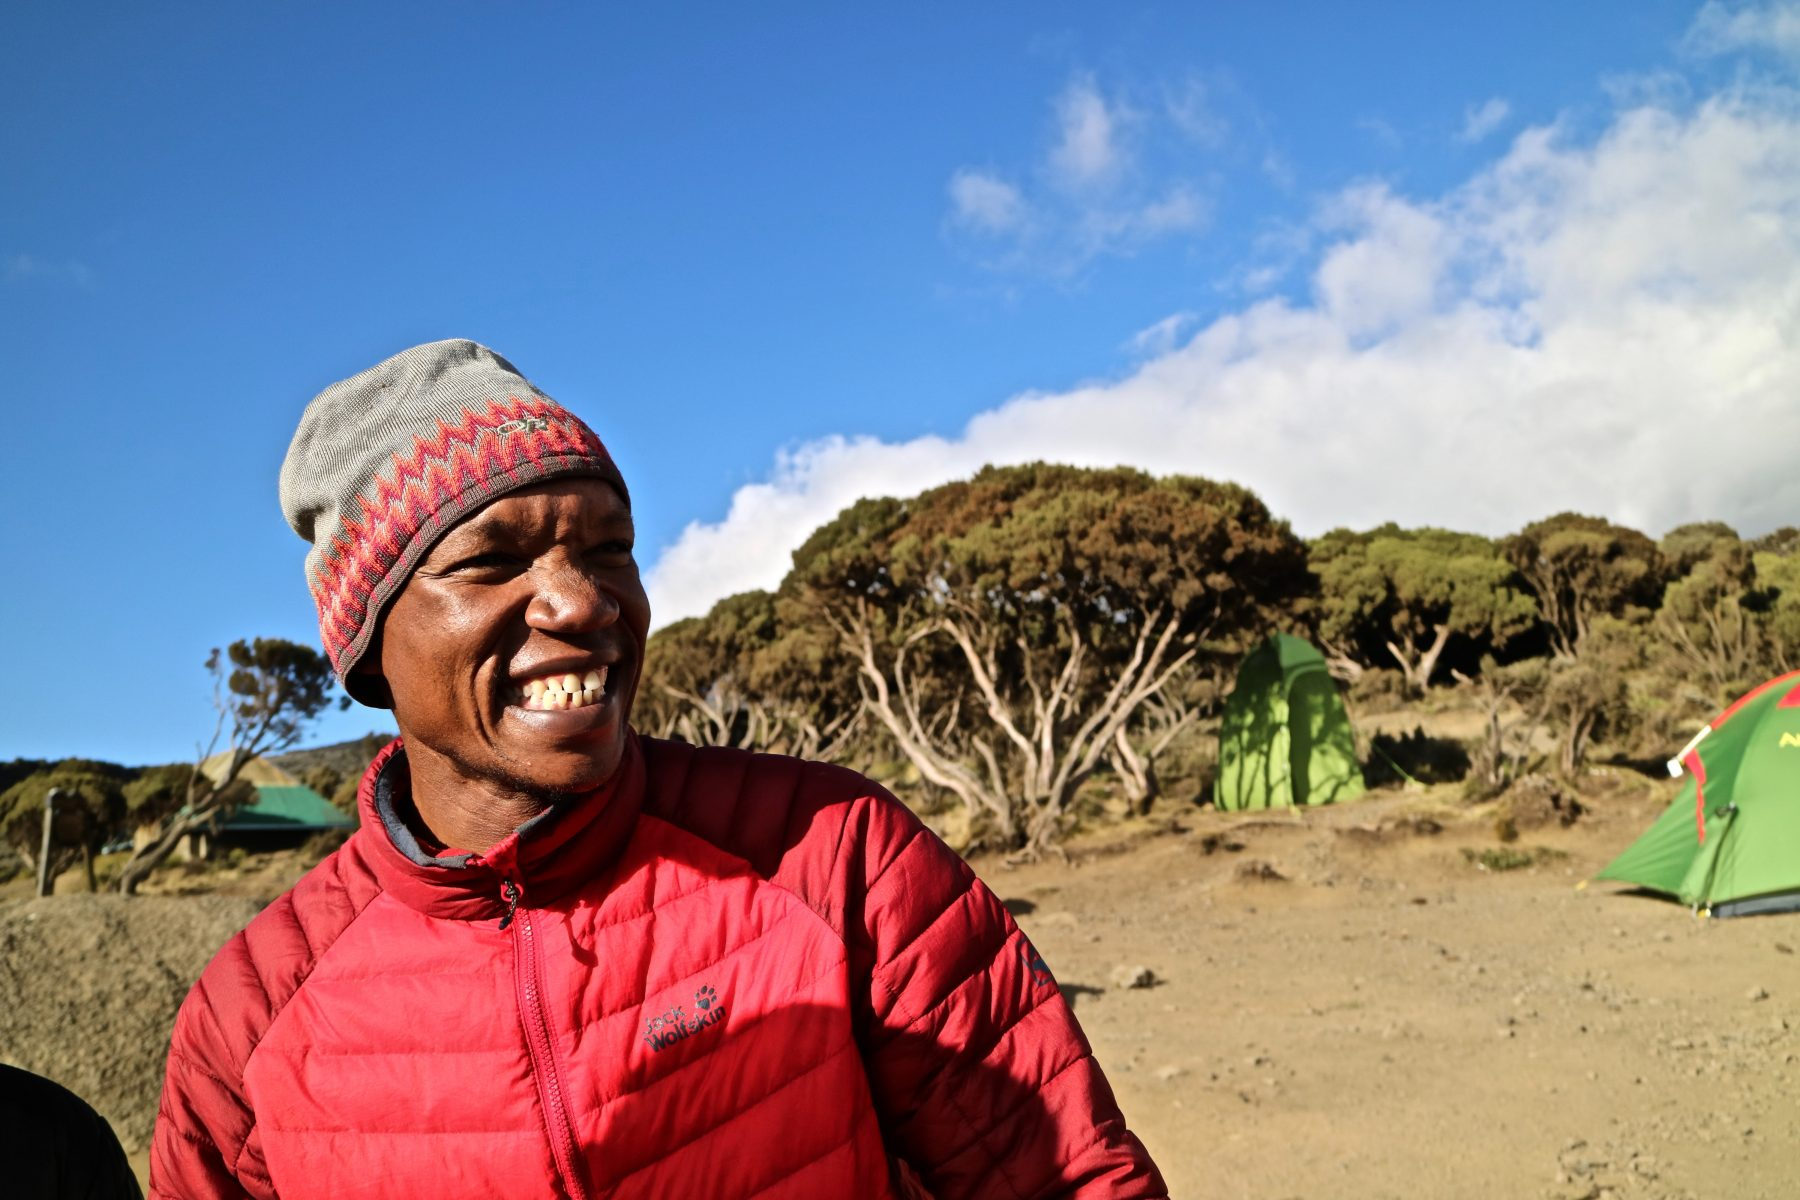 Local Kilimanjaro guide smiling and wearing a red jacket